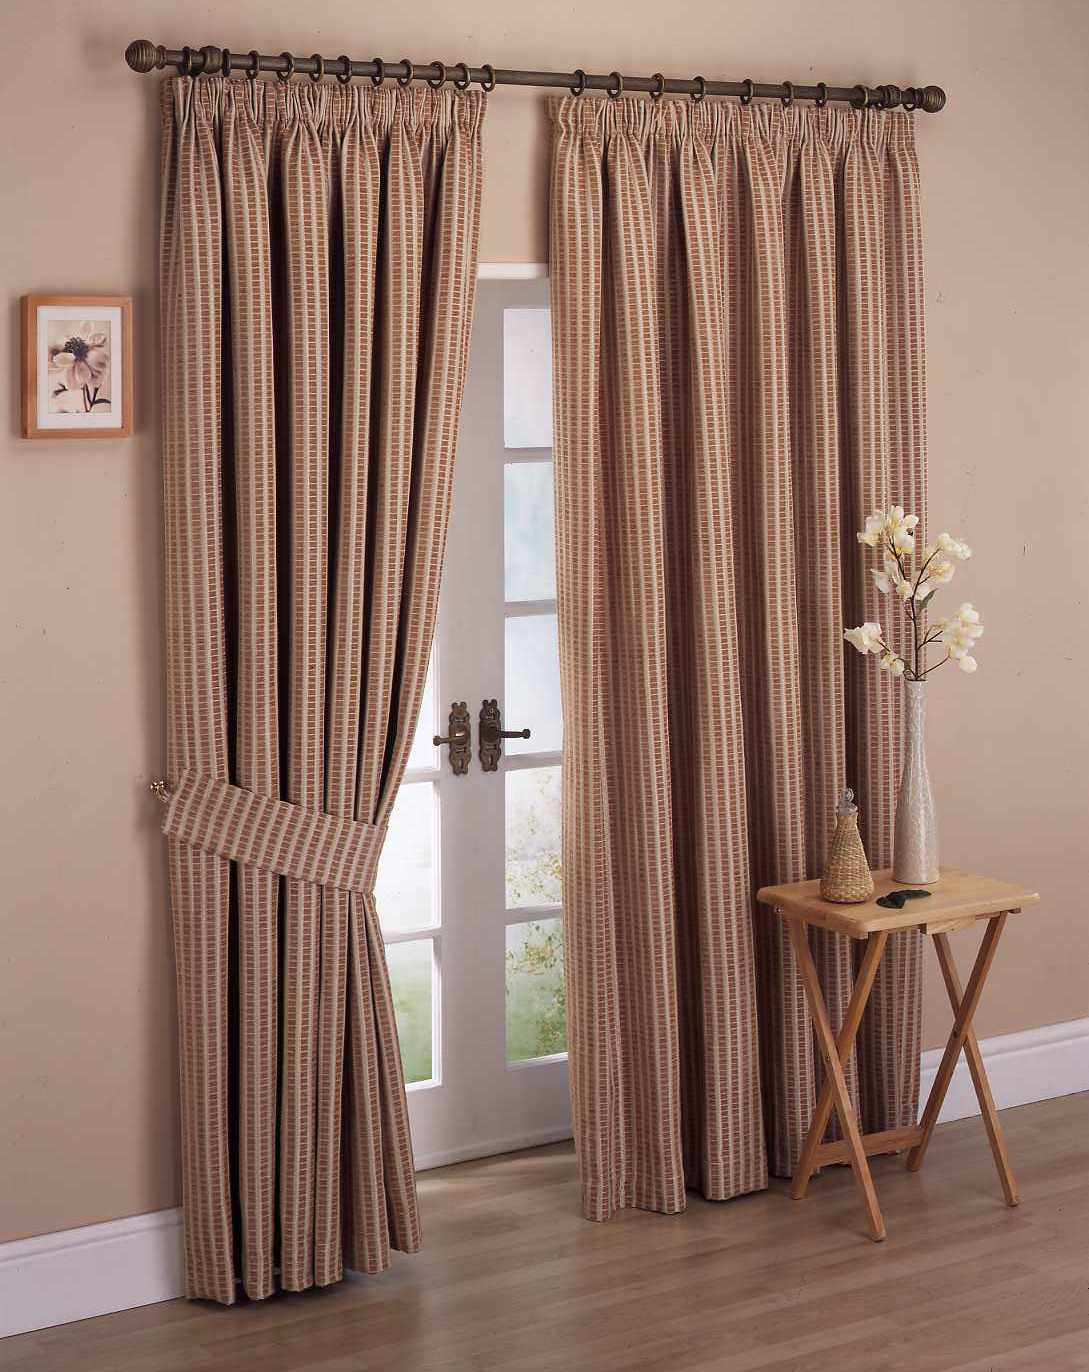 Top catalog of classic curtains designs 2013 for Simple curtain styles